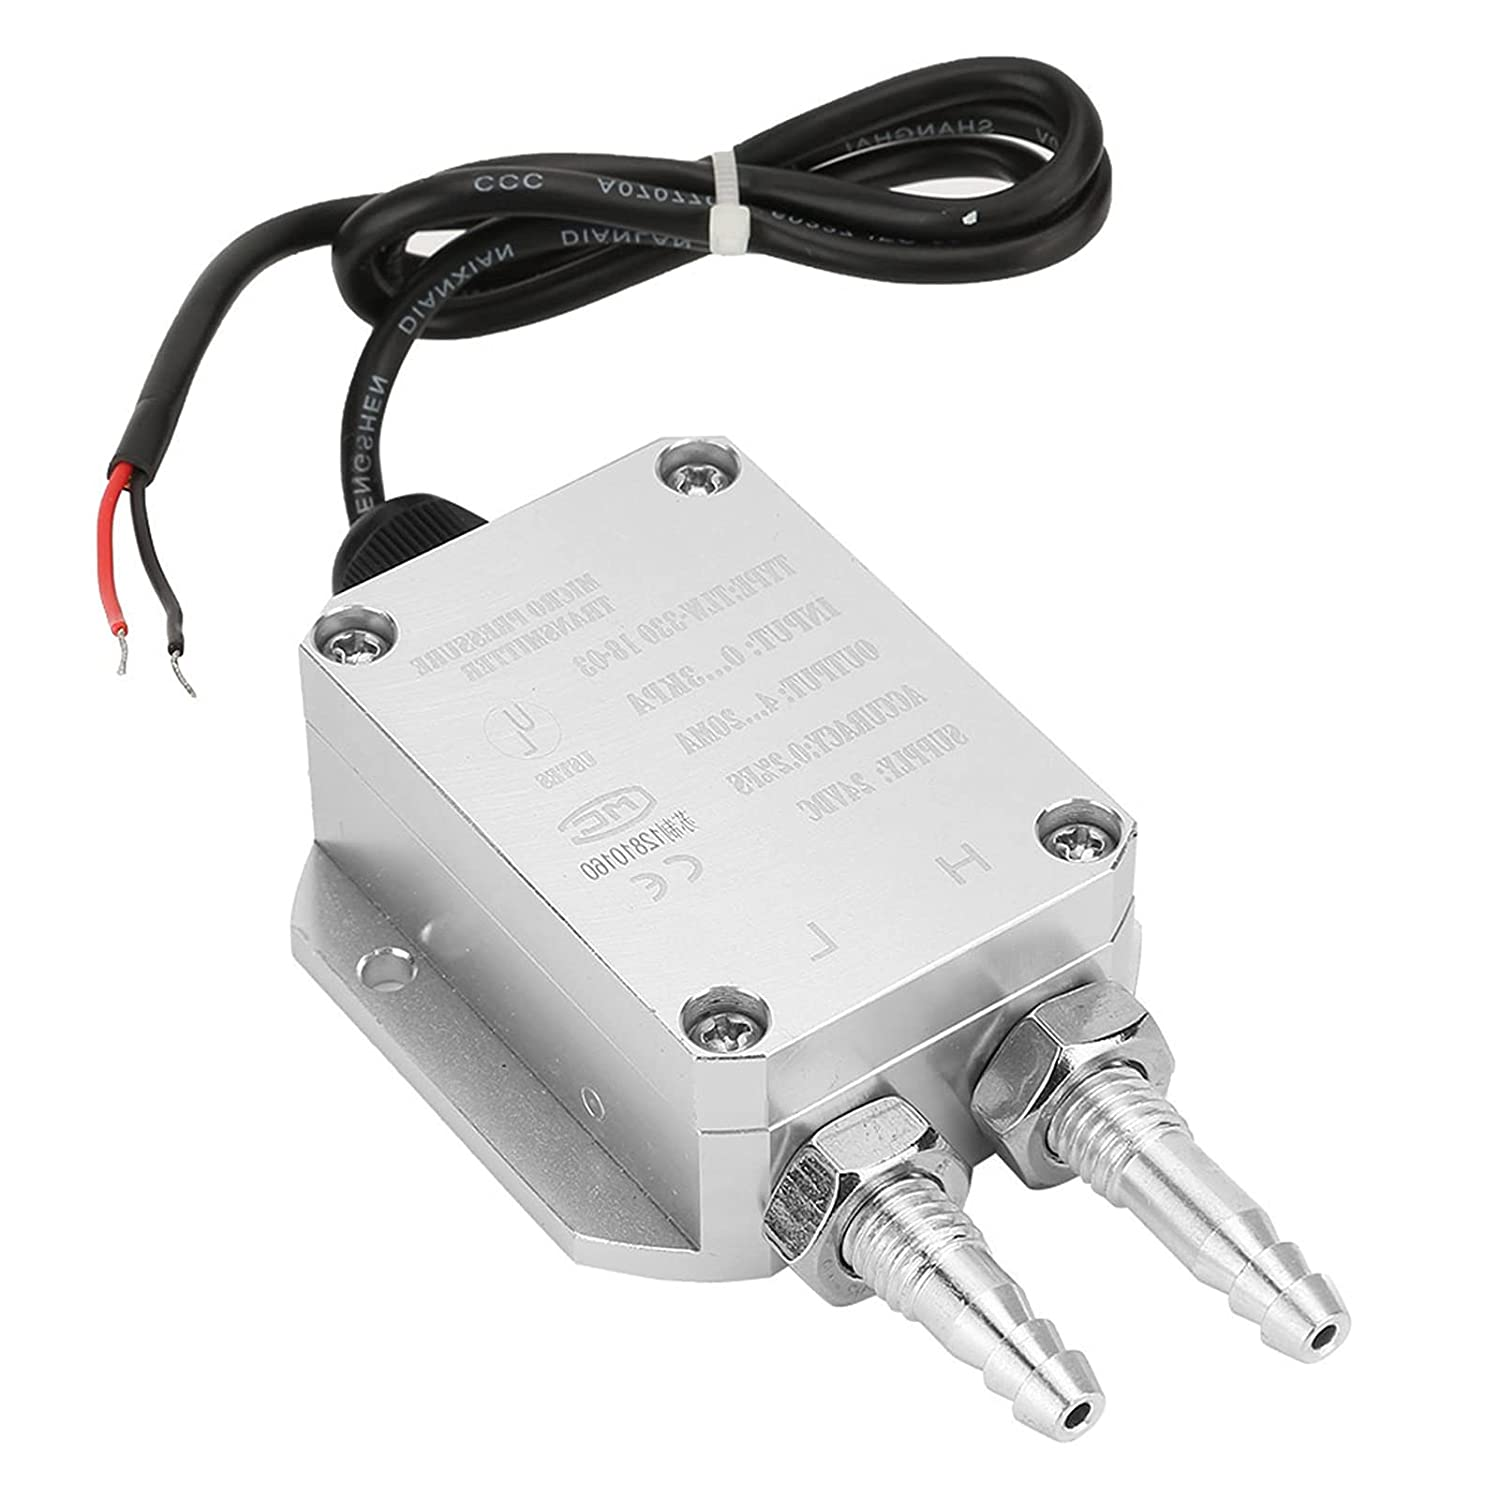 Difference Transmitter High Precision Challenge the lowest price Recommended of Japan ☆ Aluminum 4-20mA Die-cast